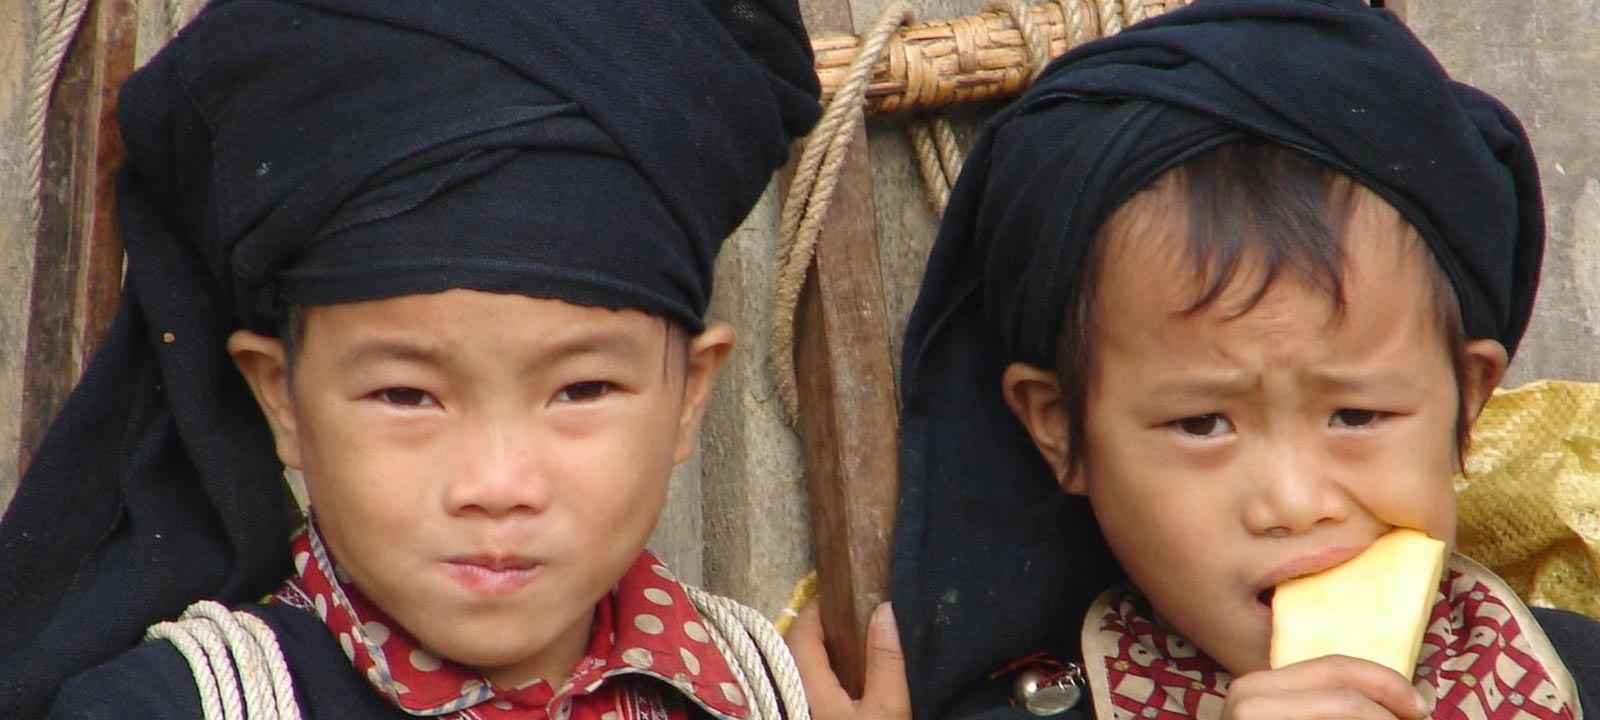 Vietnamese children in North East Vietnam